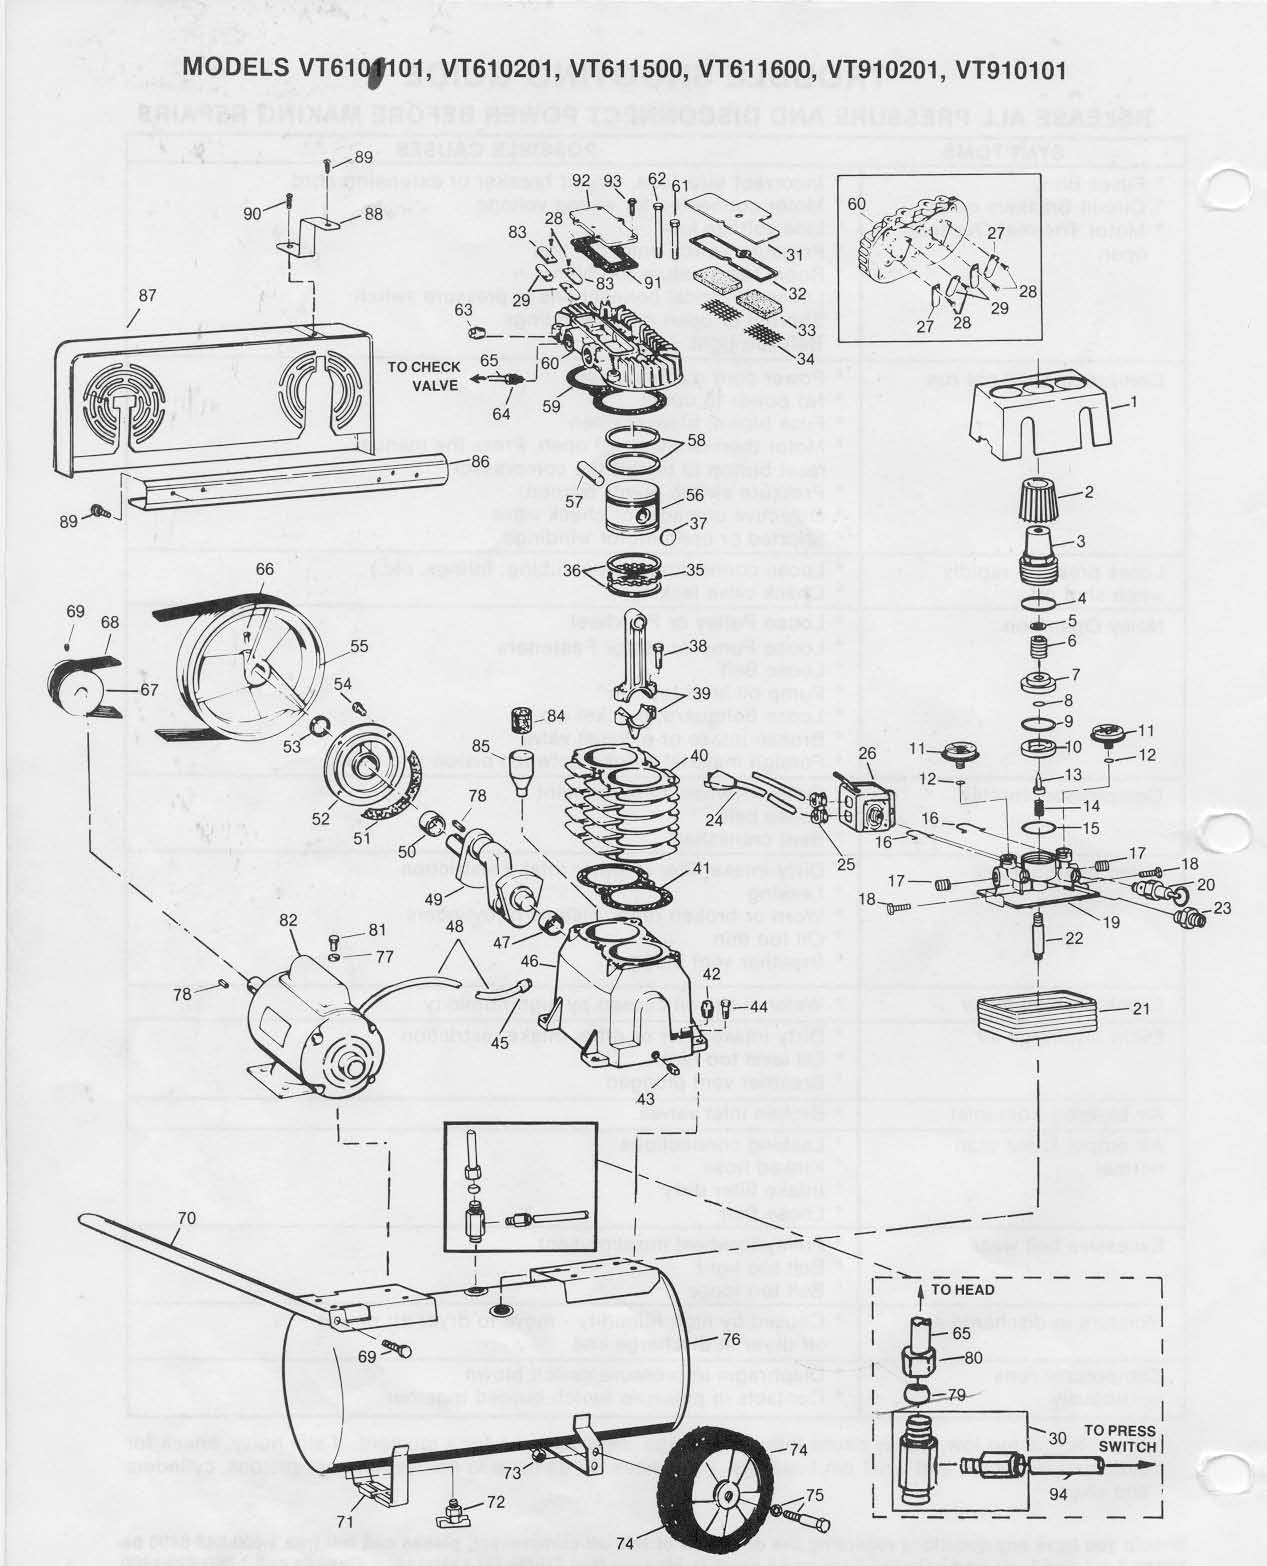 VT610101, VT610201, VT610202 - Air Compressor Parts schematic